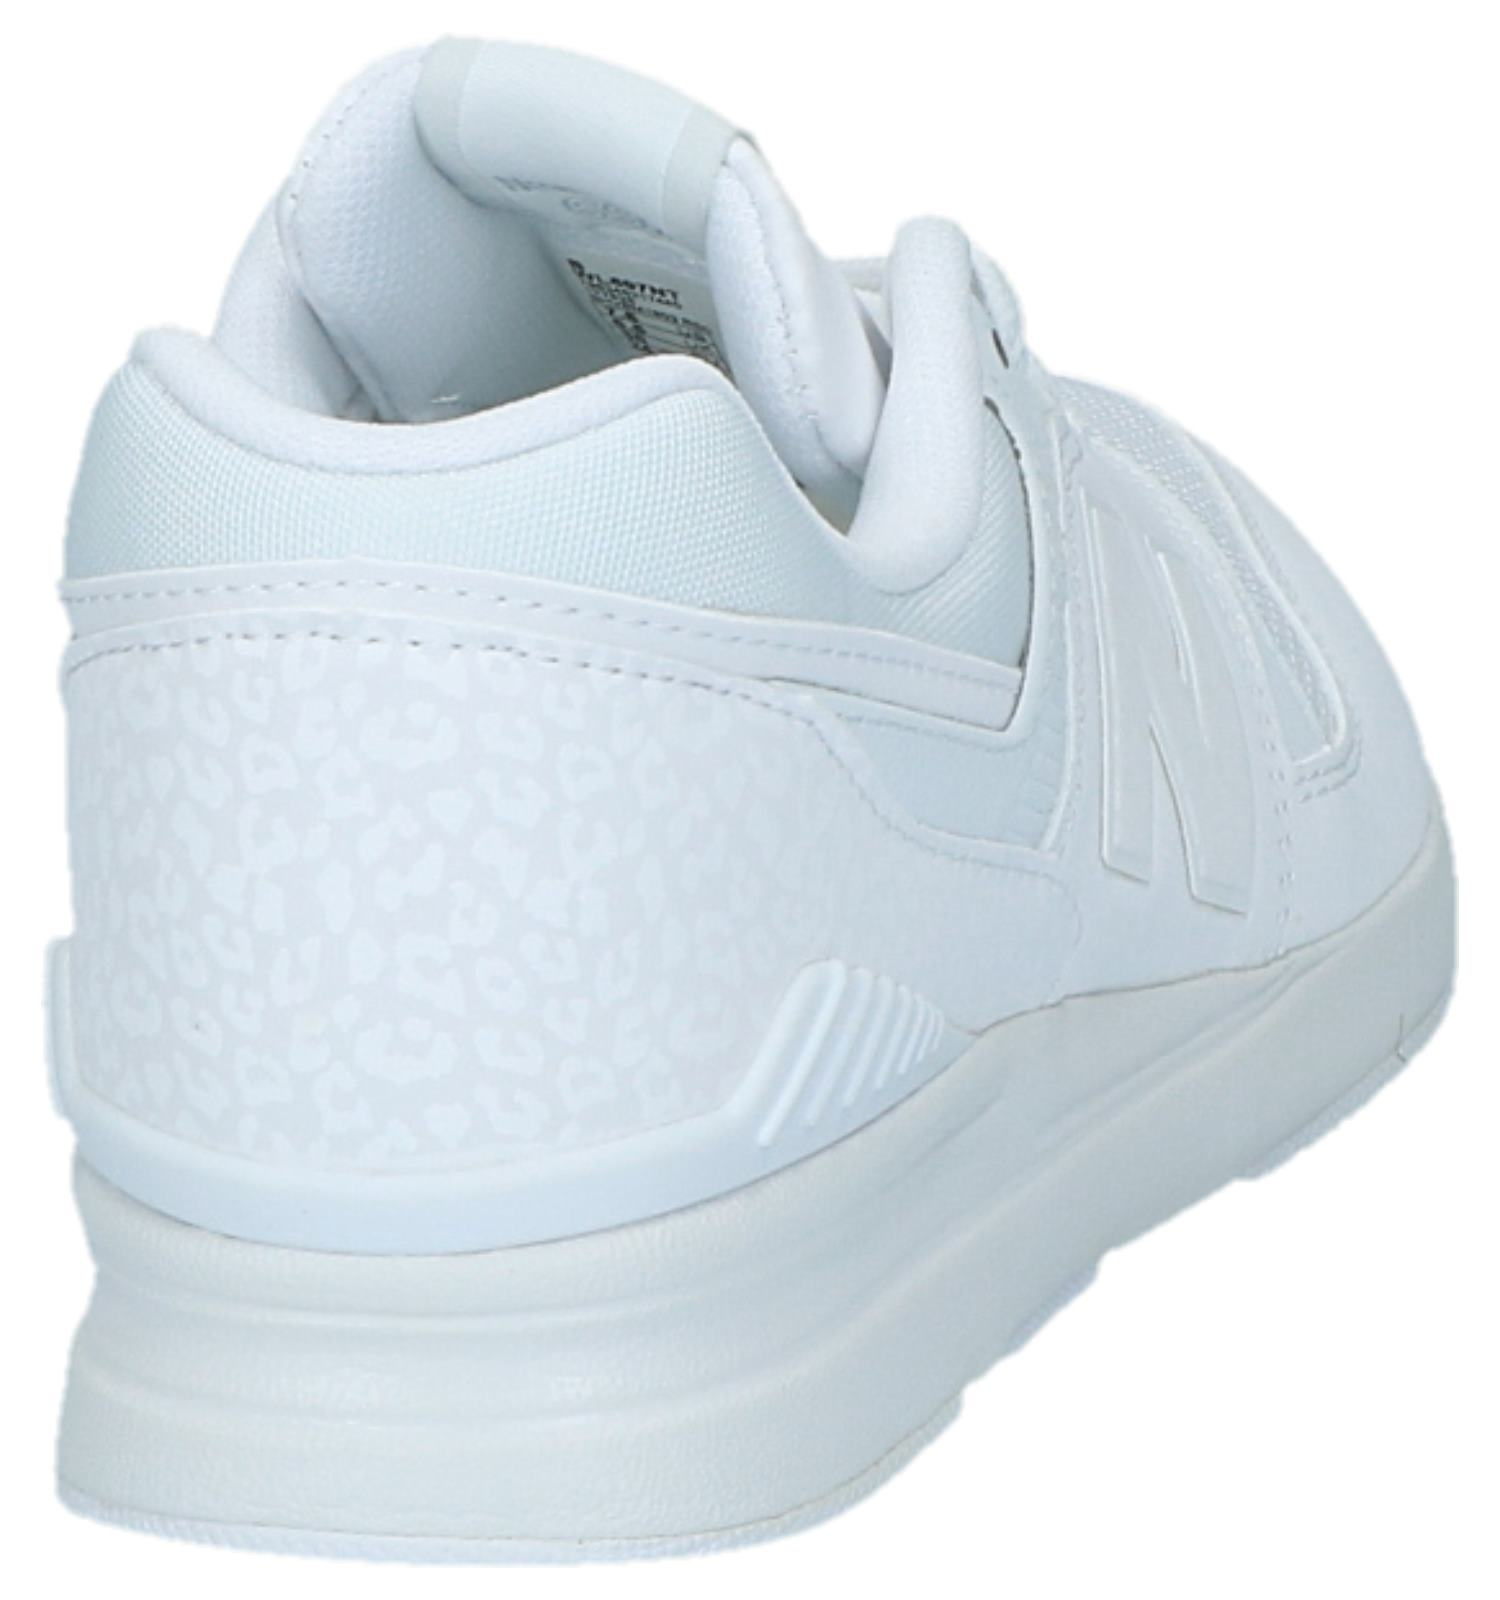 New Witte New Balance Wl697 Sneakers Balance n0yNmv8wO